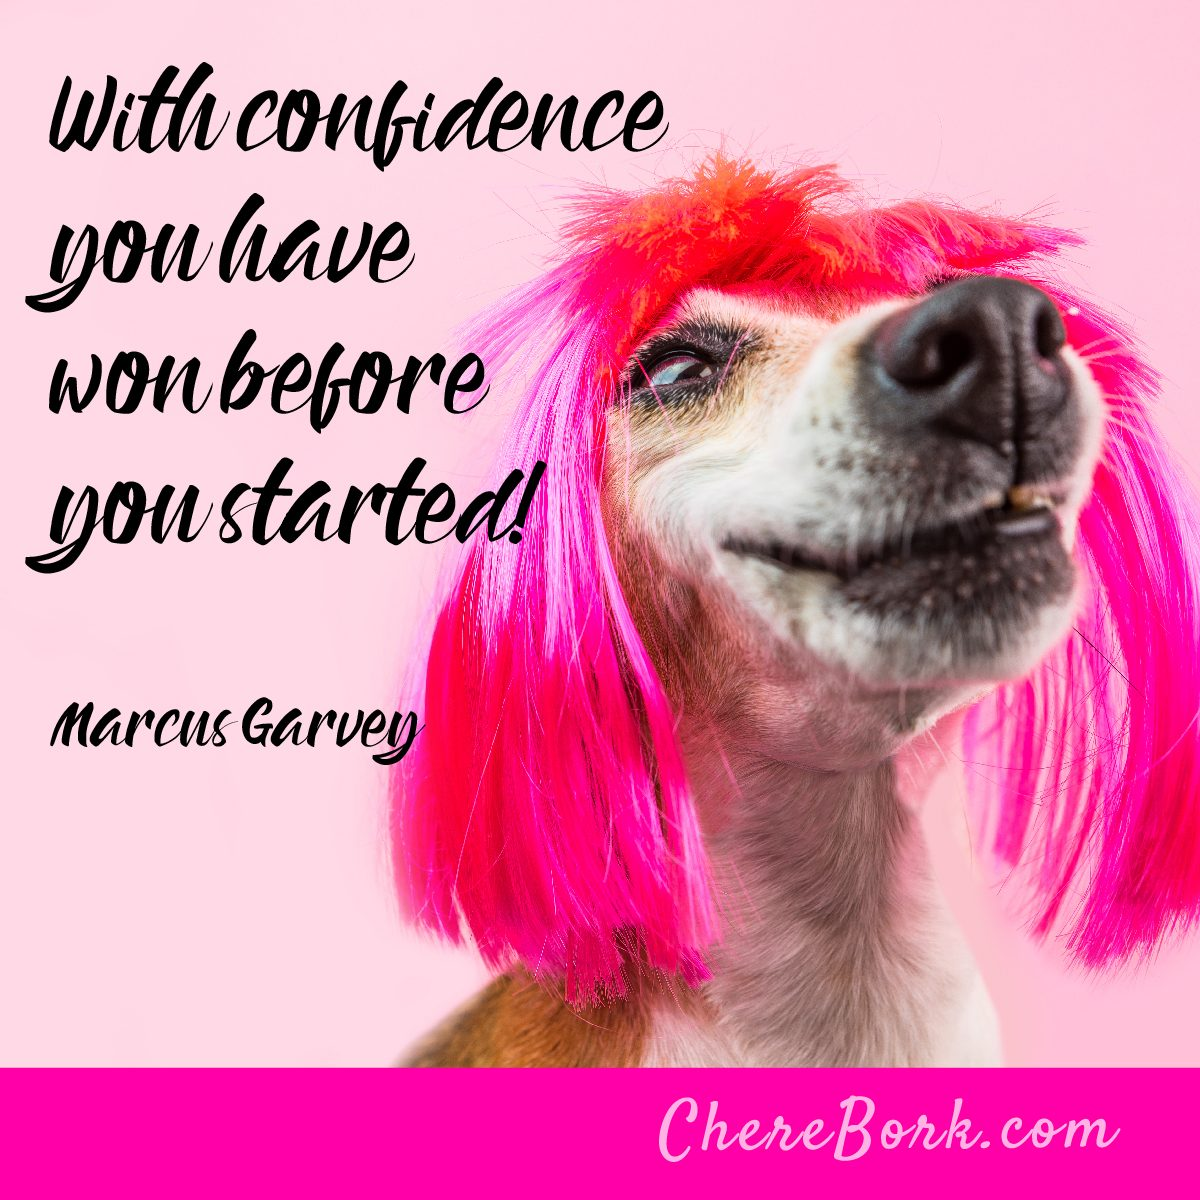 With confidence, you have won before you started! -Marcus Garvey